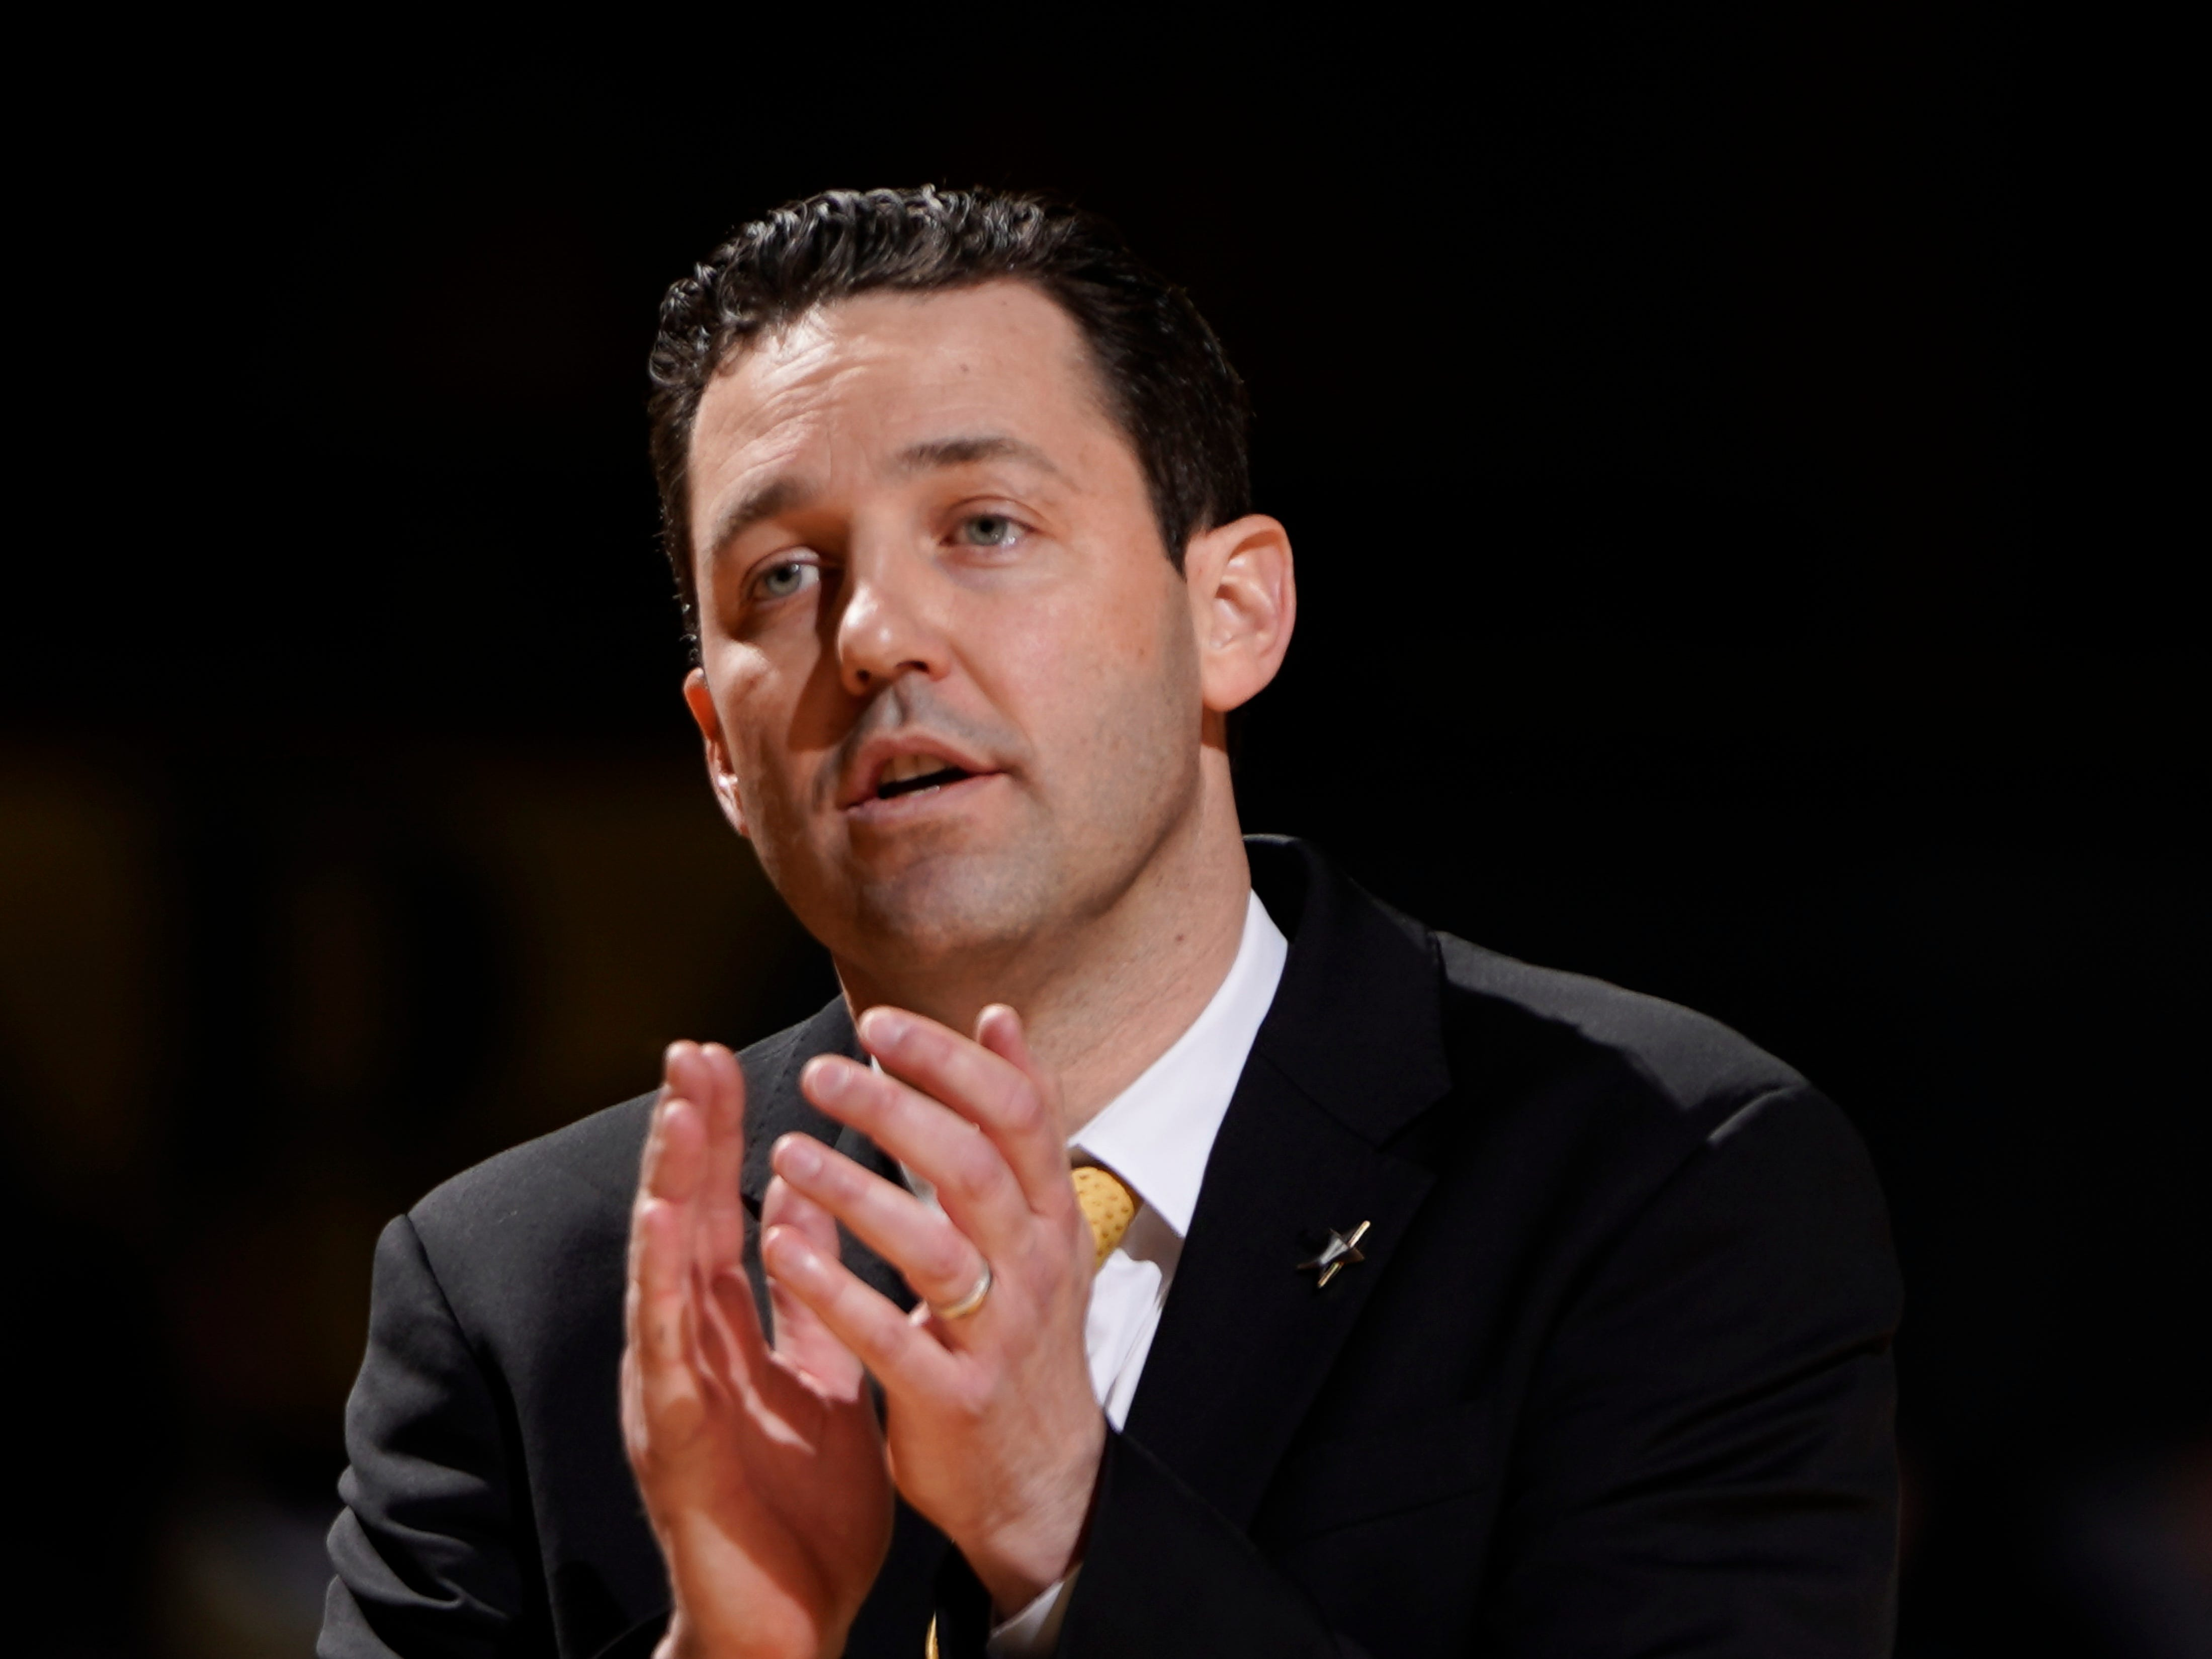 Vanderbilt head coach Bryce Drew tries to motivate his players during the second half of their game against Arkansas as they lose 84 to 48 at Memorial Gym Wednesday, March 6, 2019 in Nashville, Tenn.